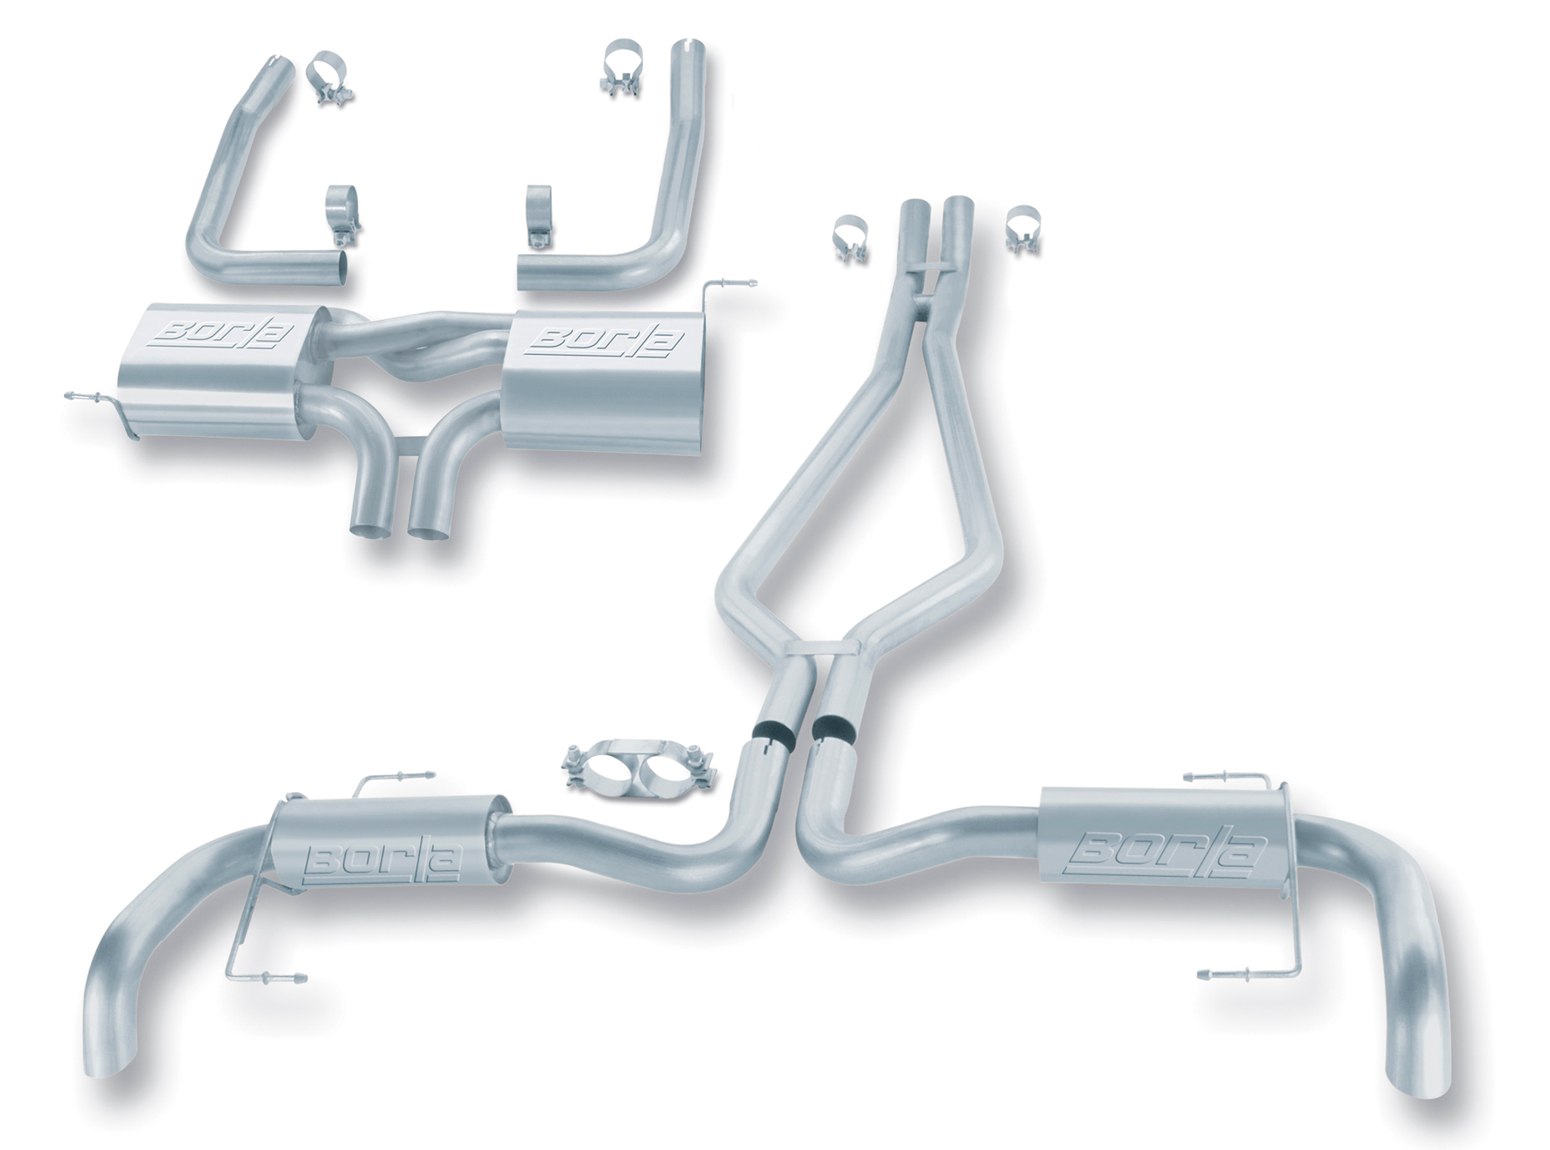 "Land Rover Range Rover Hse 4.4l V8 2003-2005 Borla 2.25"", 2"" Cat-Back Exhaust System - Turndown/Turnout"